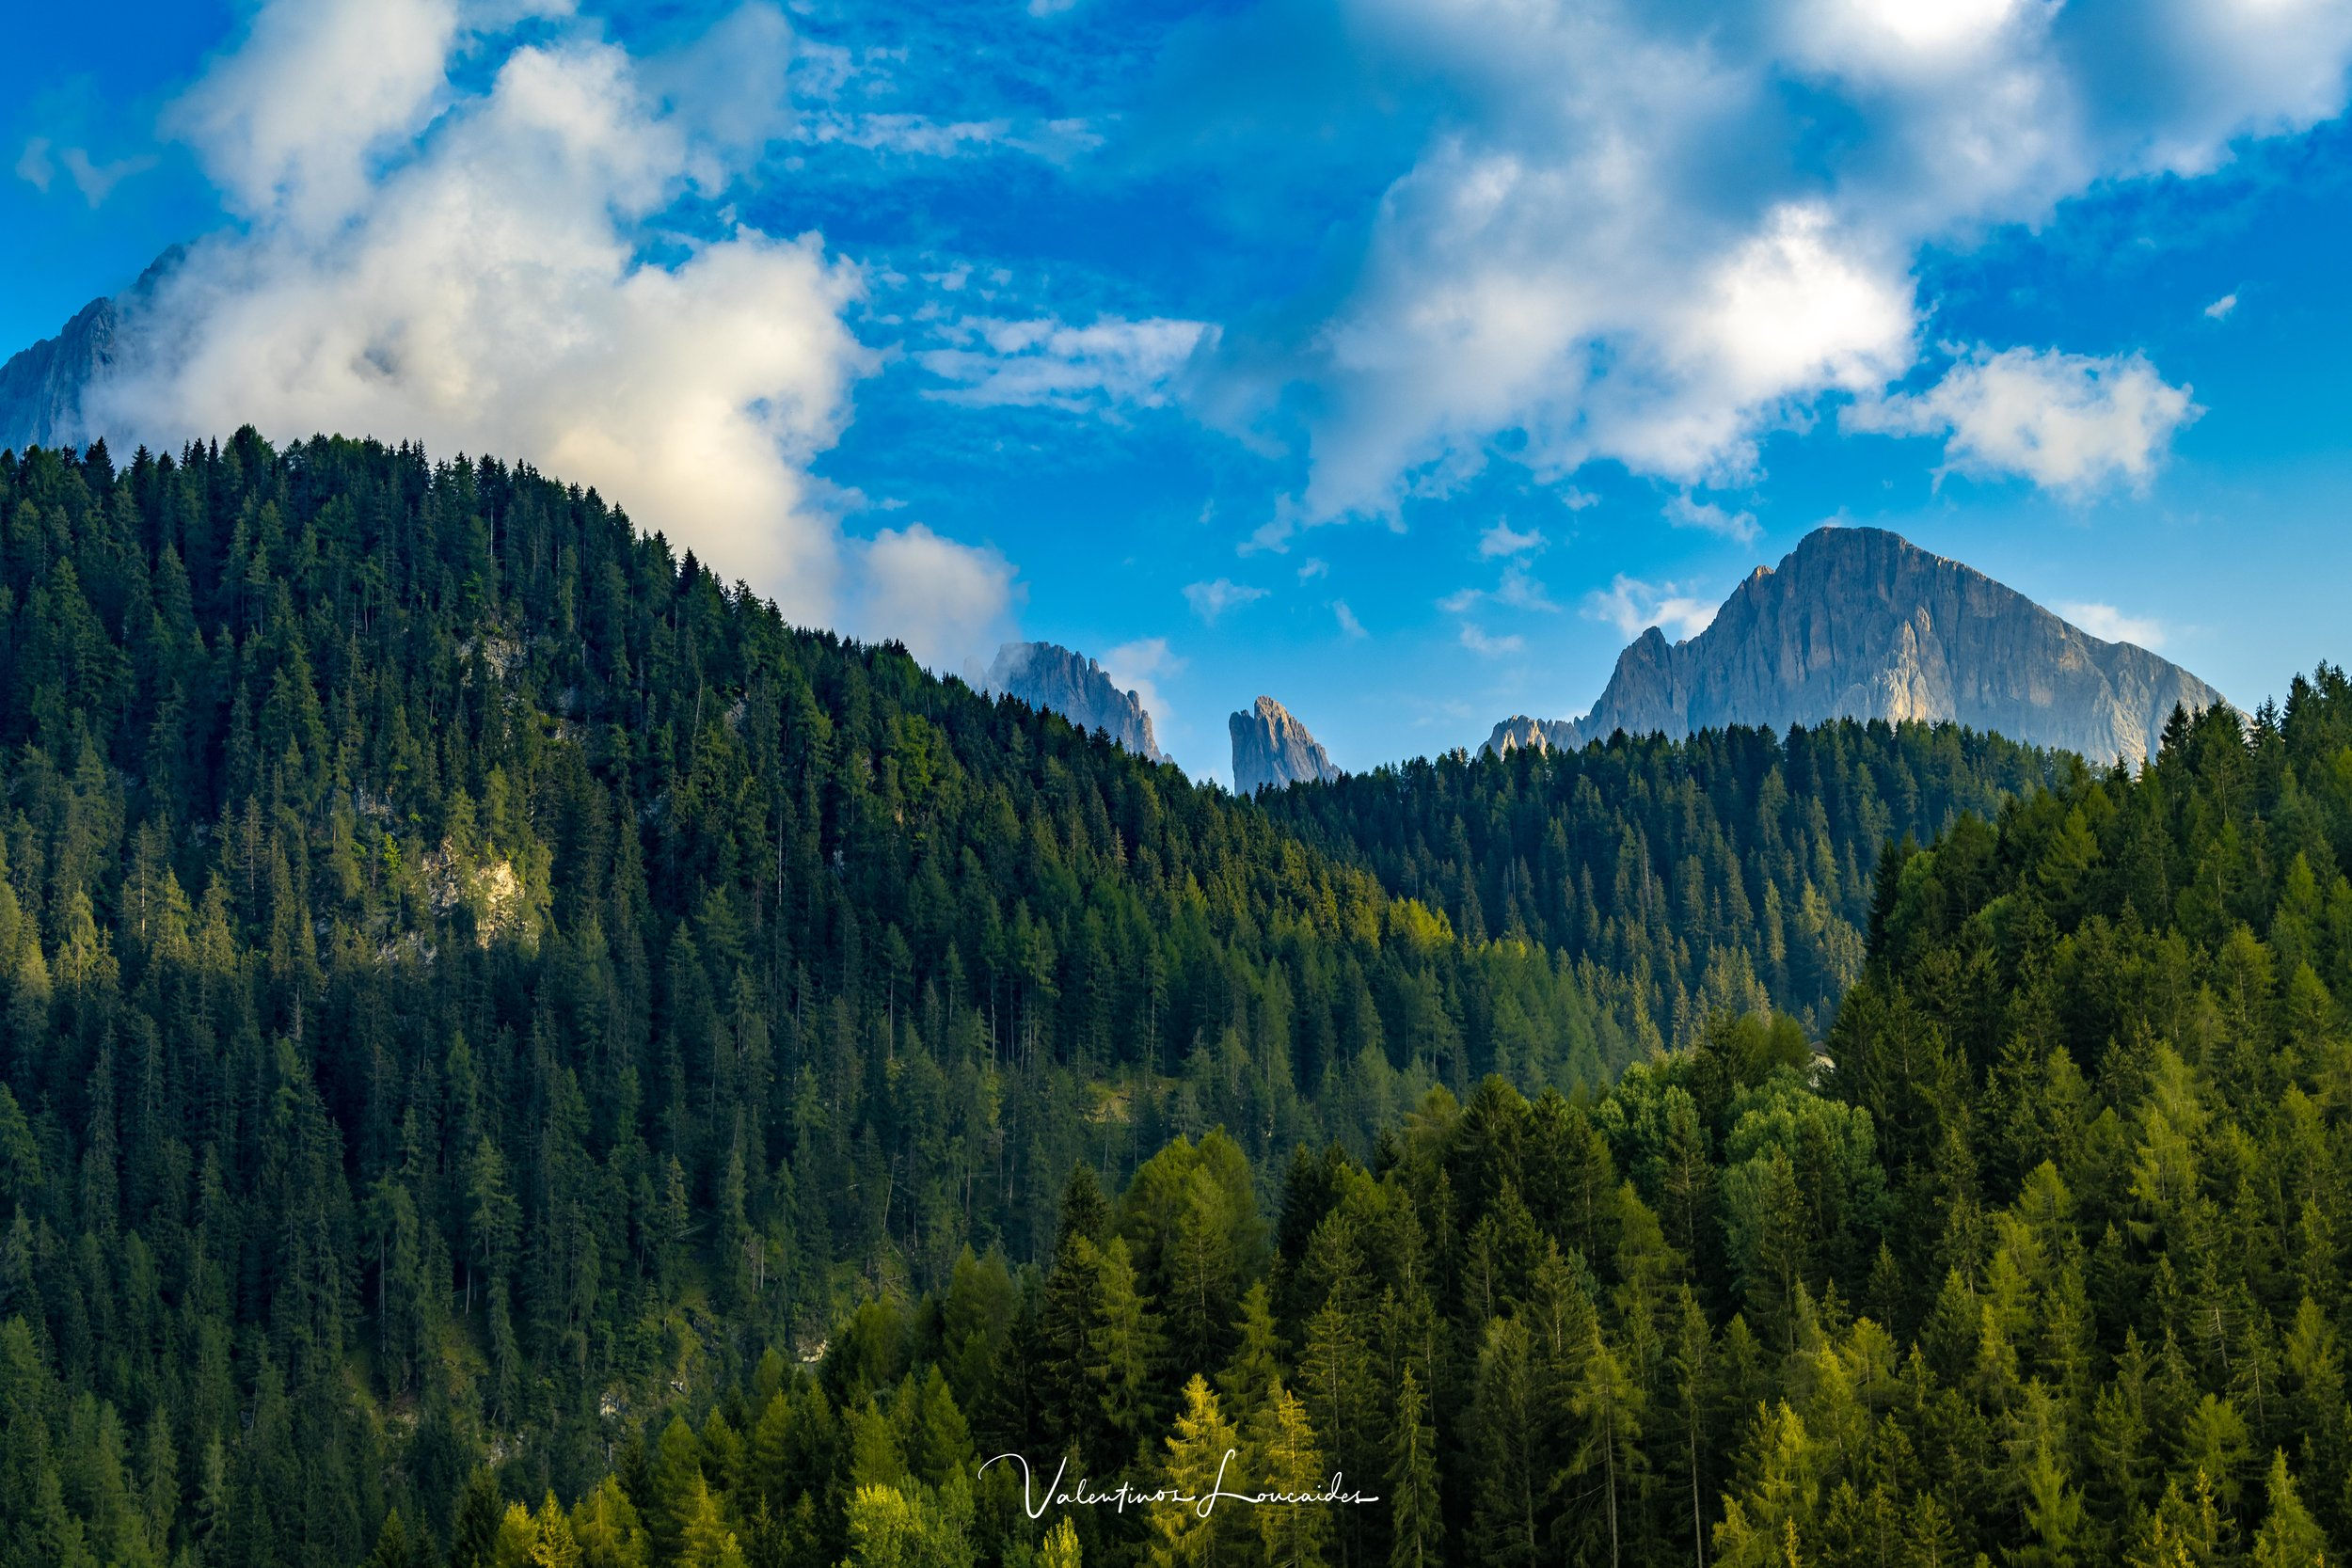 Dolomites photography road trip